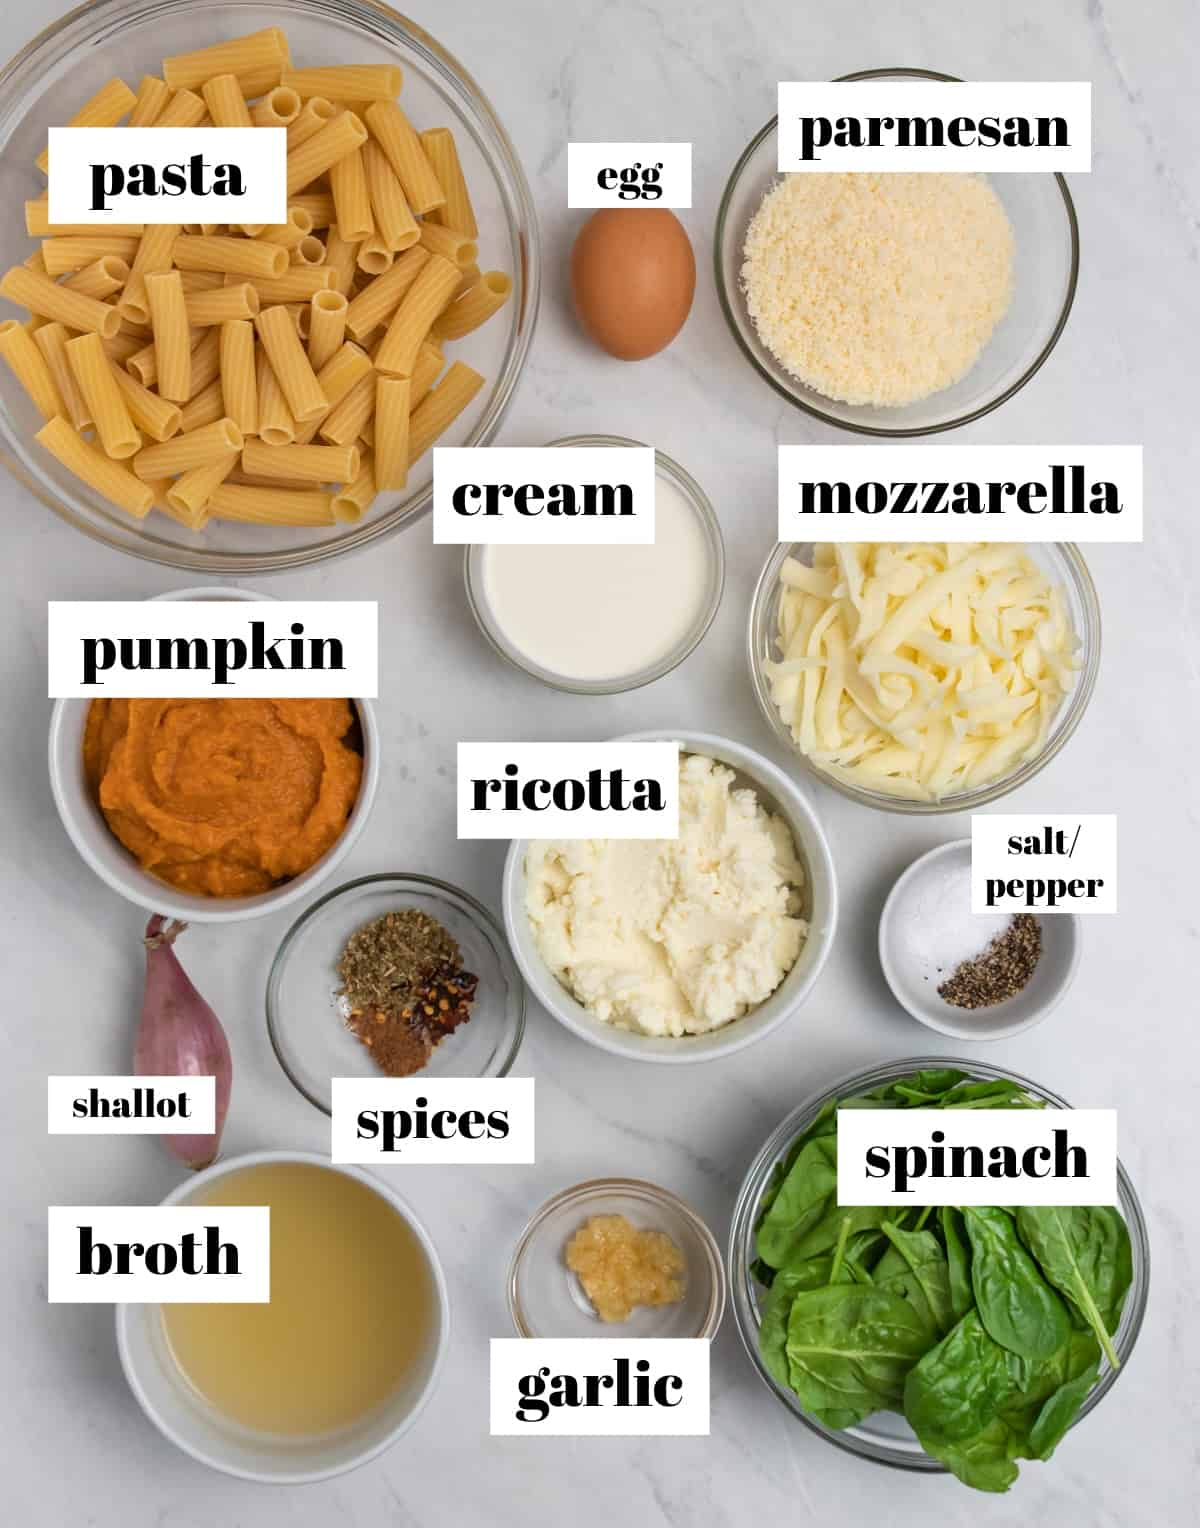 rigatoni, egg, cheeses, spinach, pumpkin and other ingredients labeled on counter.